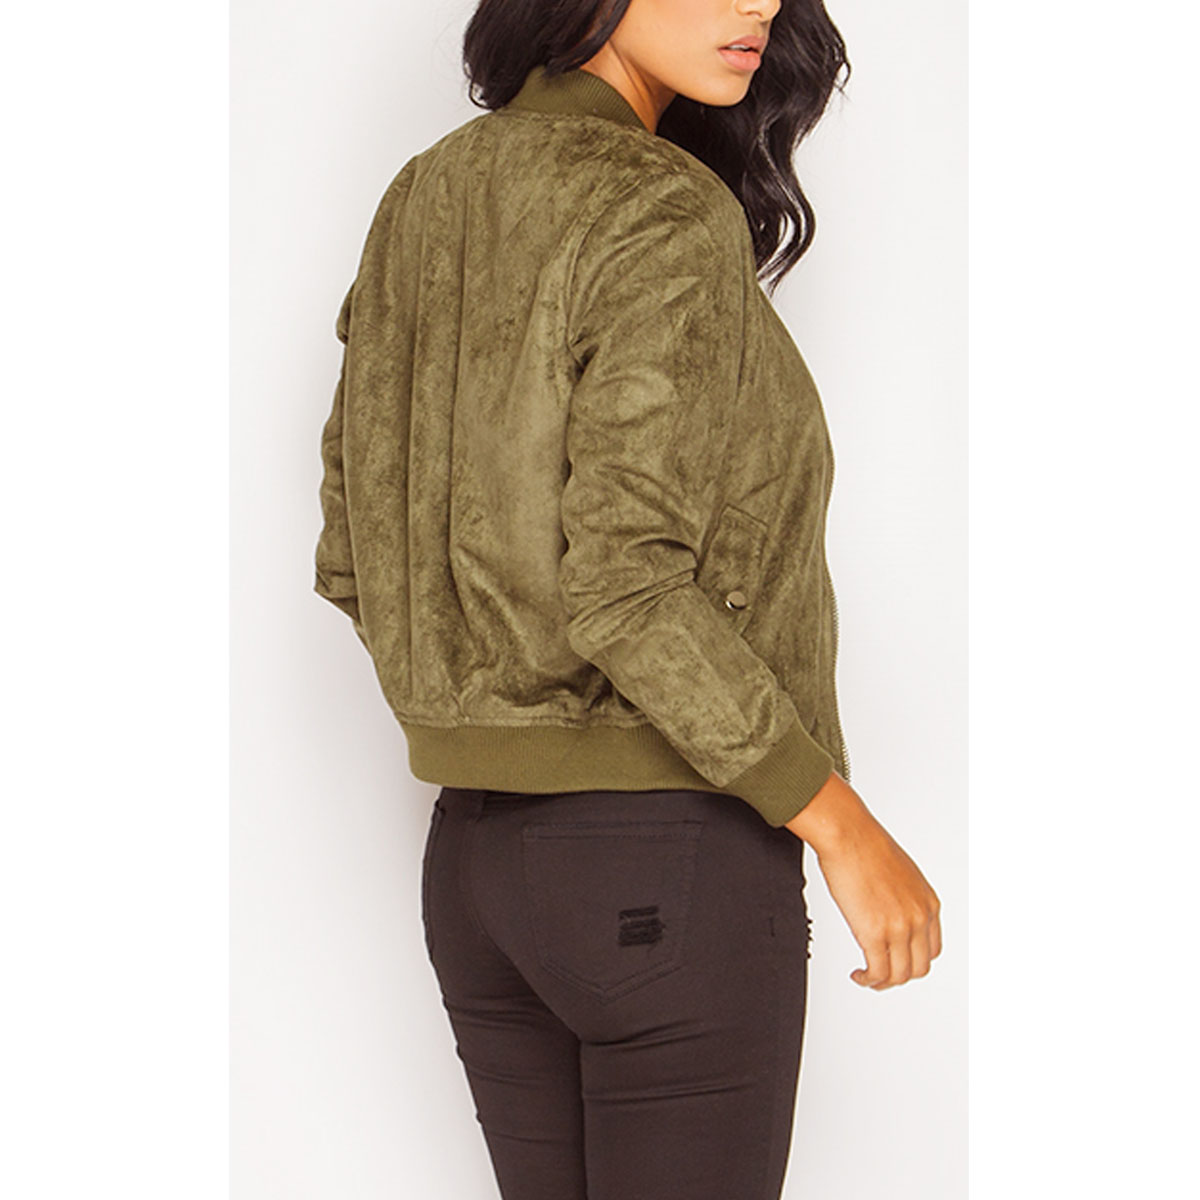 New Womens Ladies Suede Bomber Jacket Celeb Party Vintage Biker ...